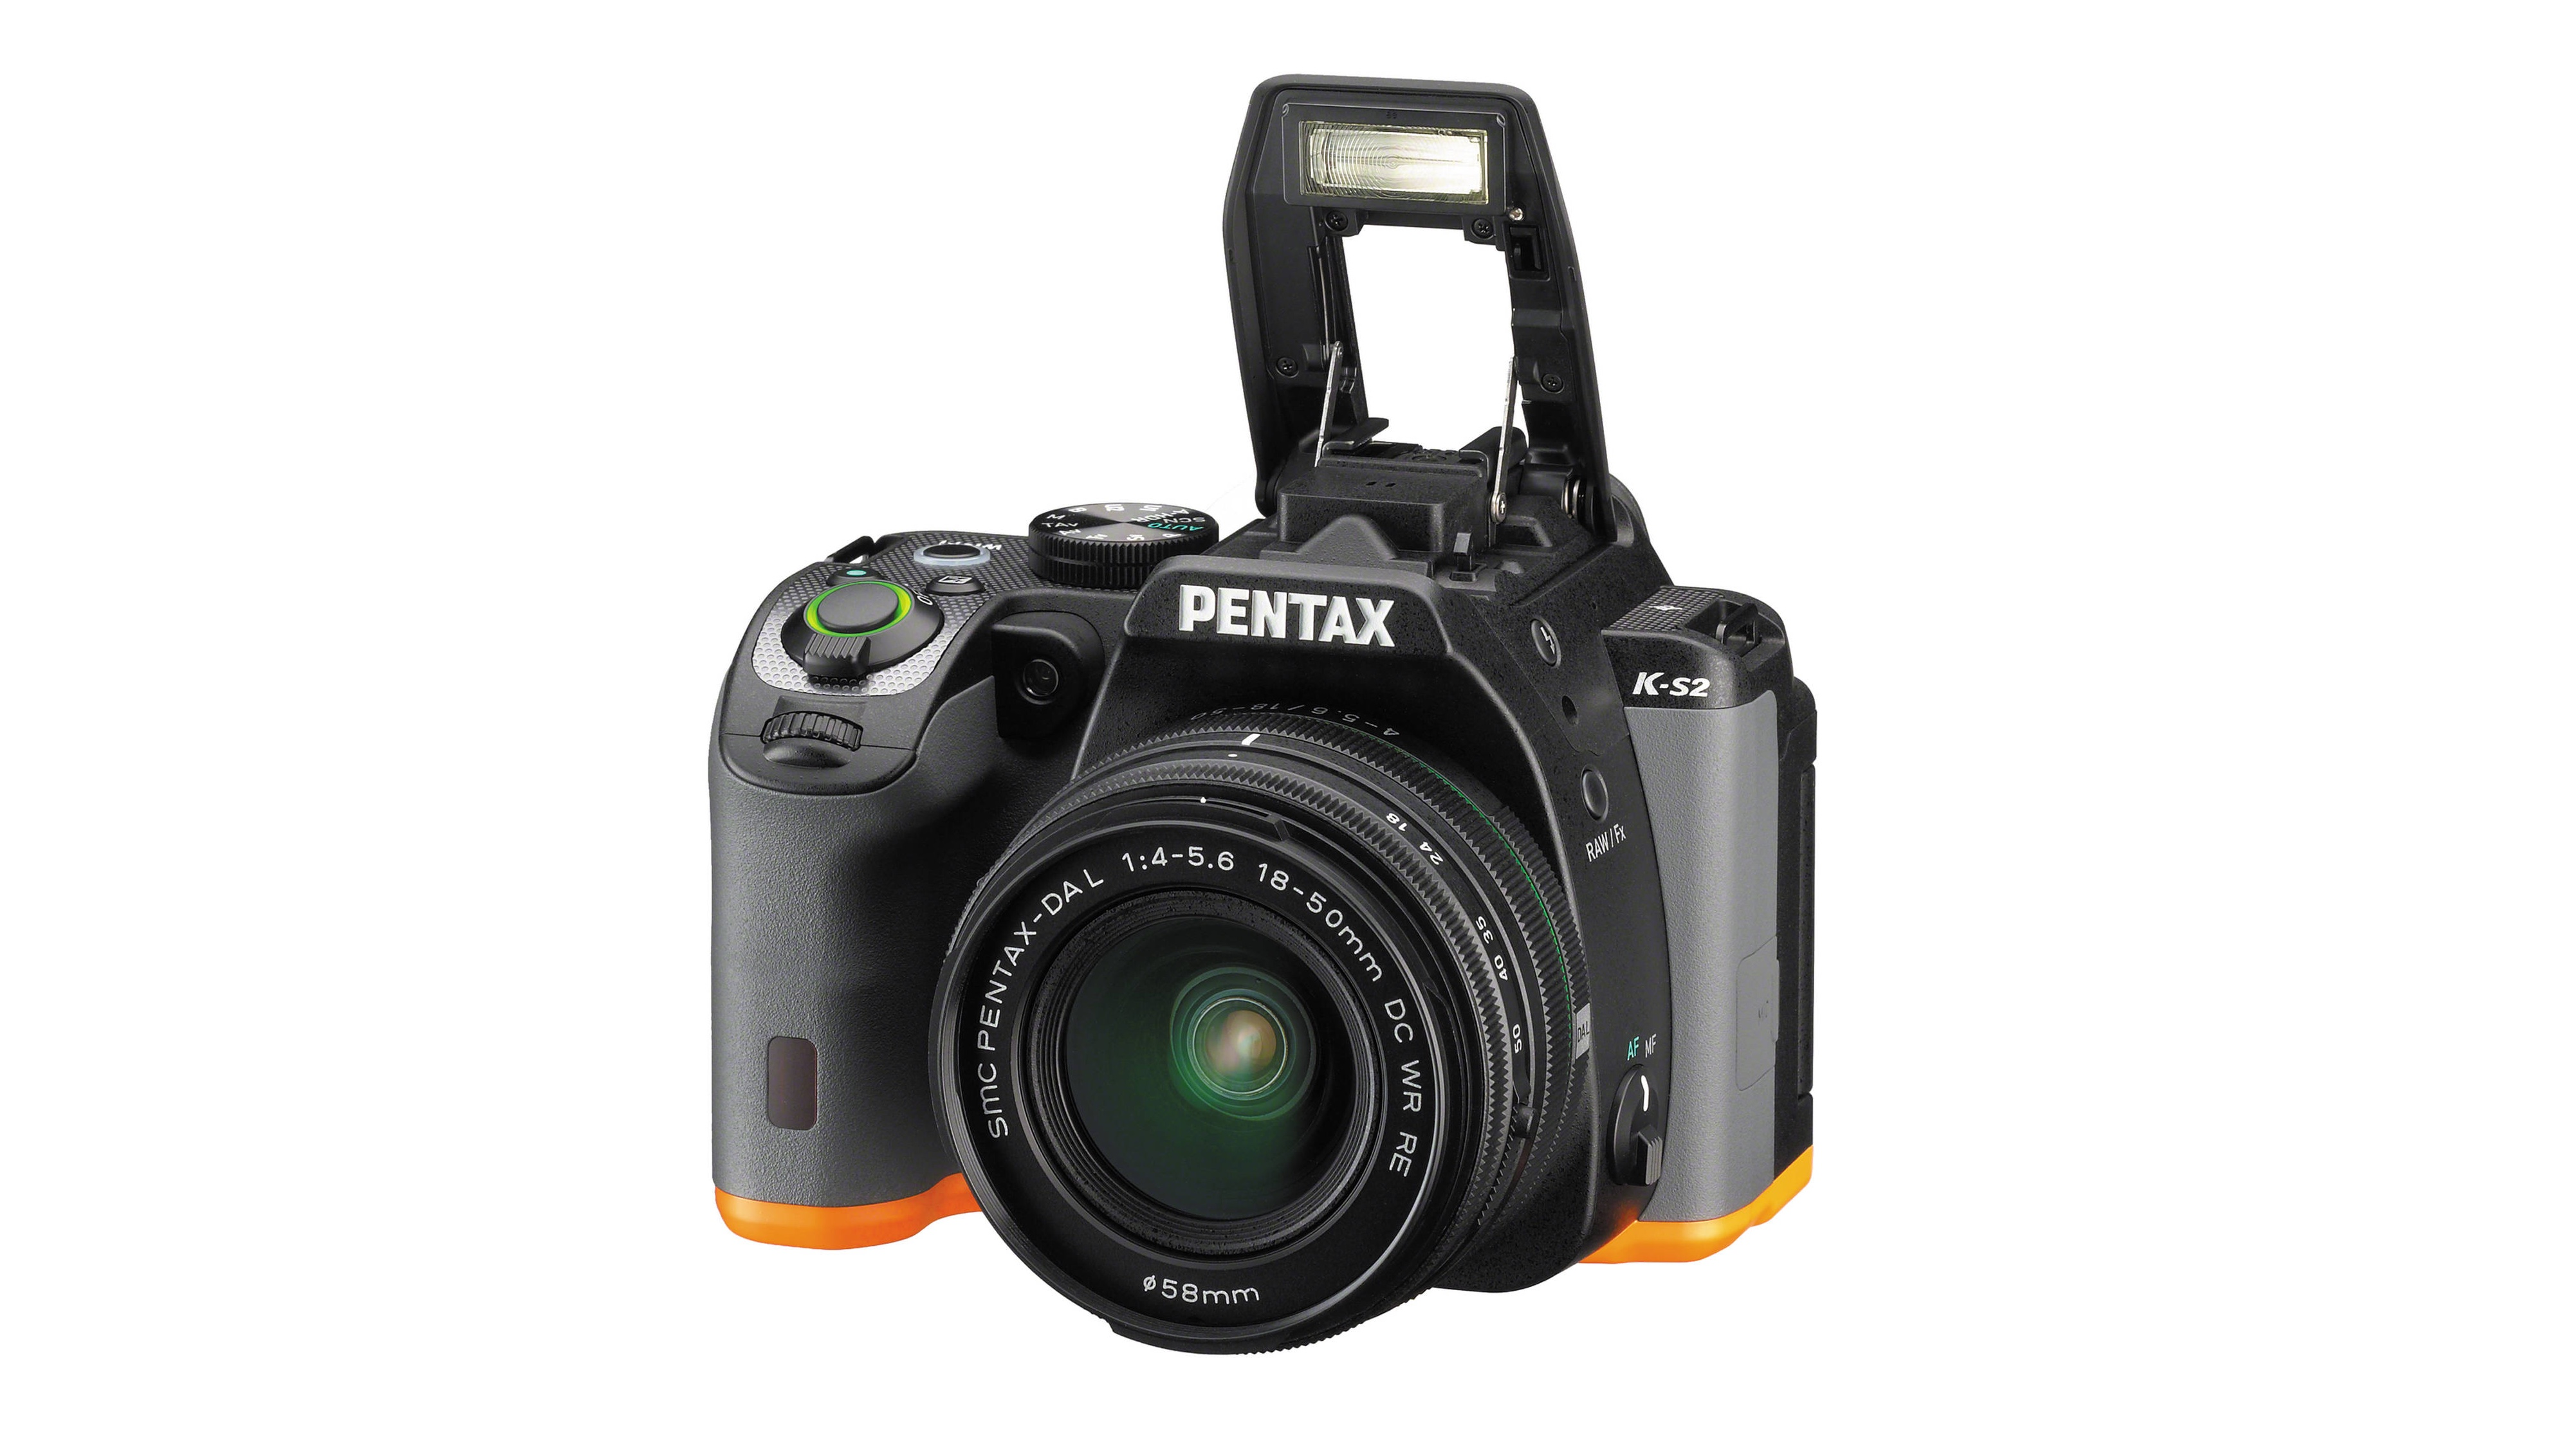 Cameta Camera offers the best value on discount and refurbished digital cameras with a 1 year warranty. Find quality refurbished cameras at great prices here.